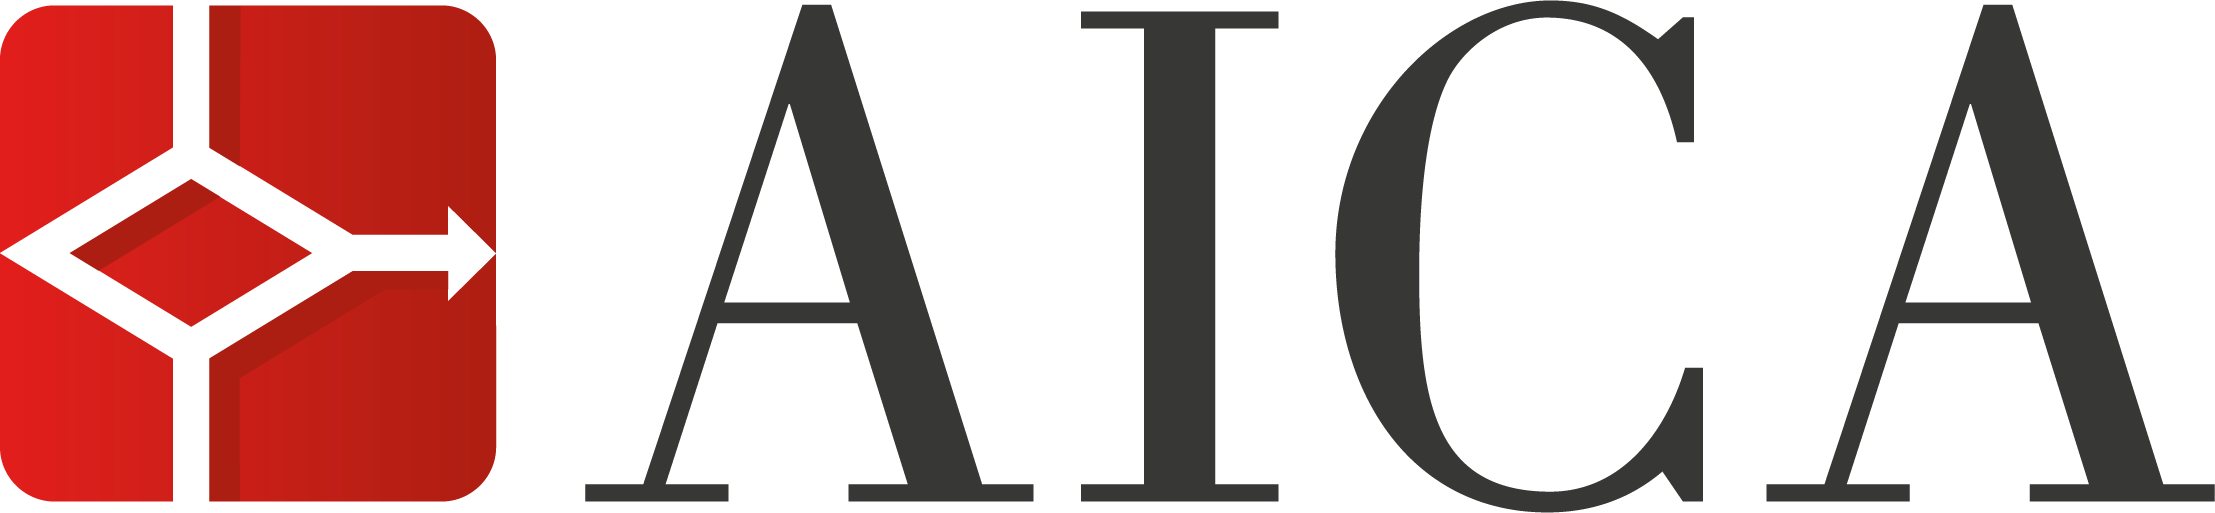 Logo_AICA_colore_senza_payoff_.png